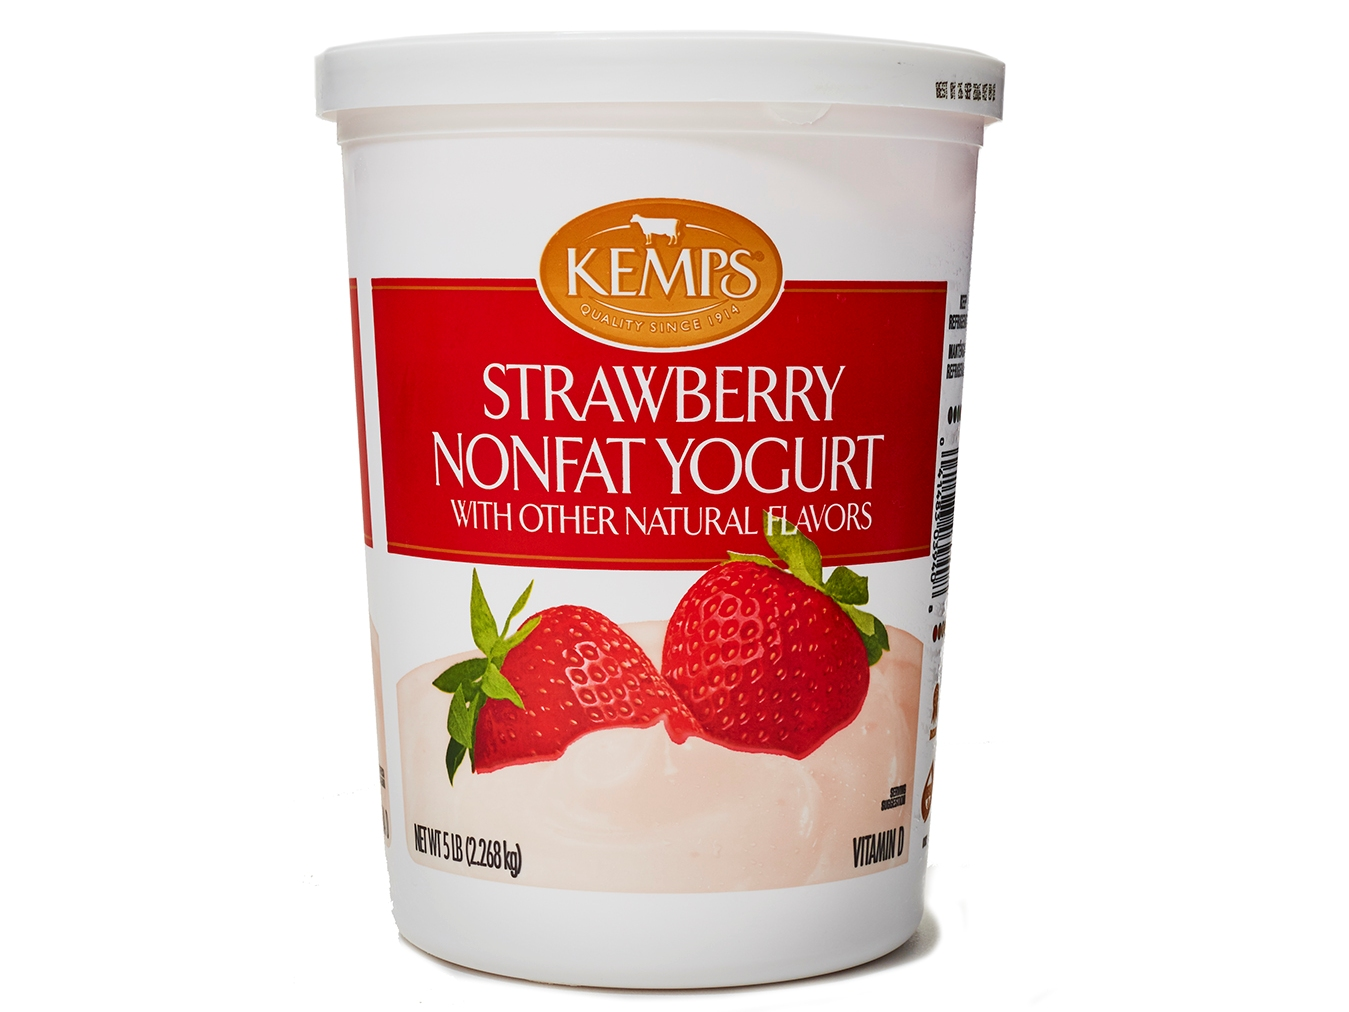 Kemps Strawberry Nonfat Yogurt